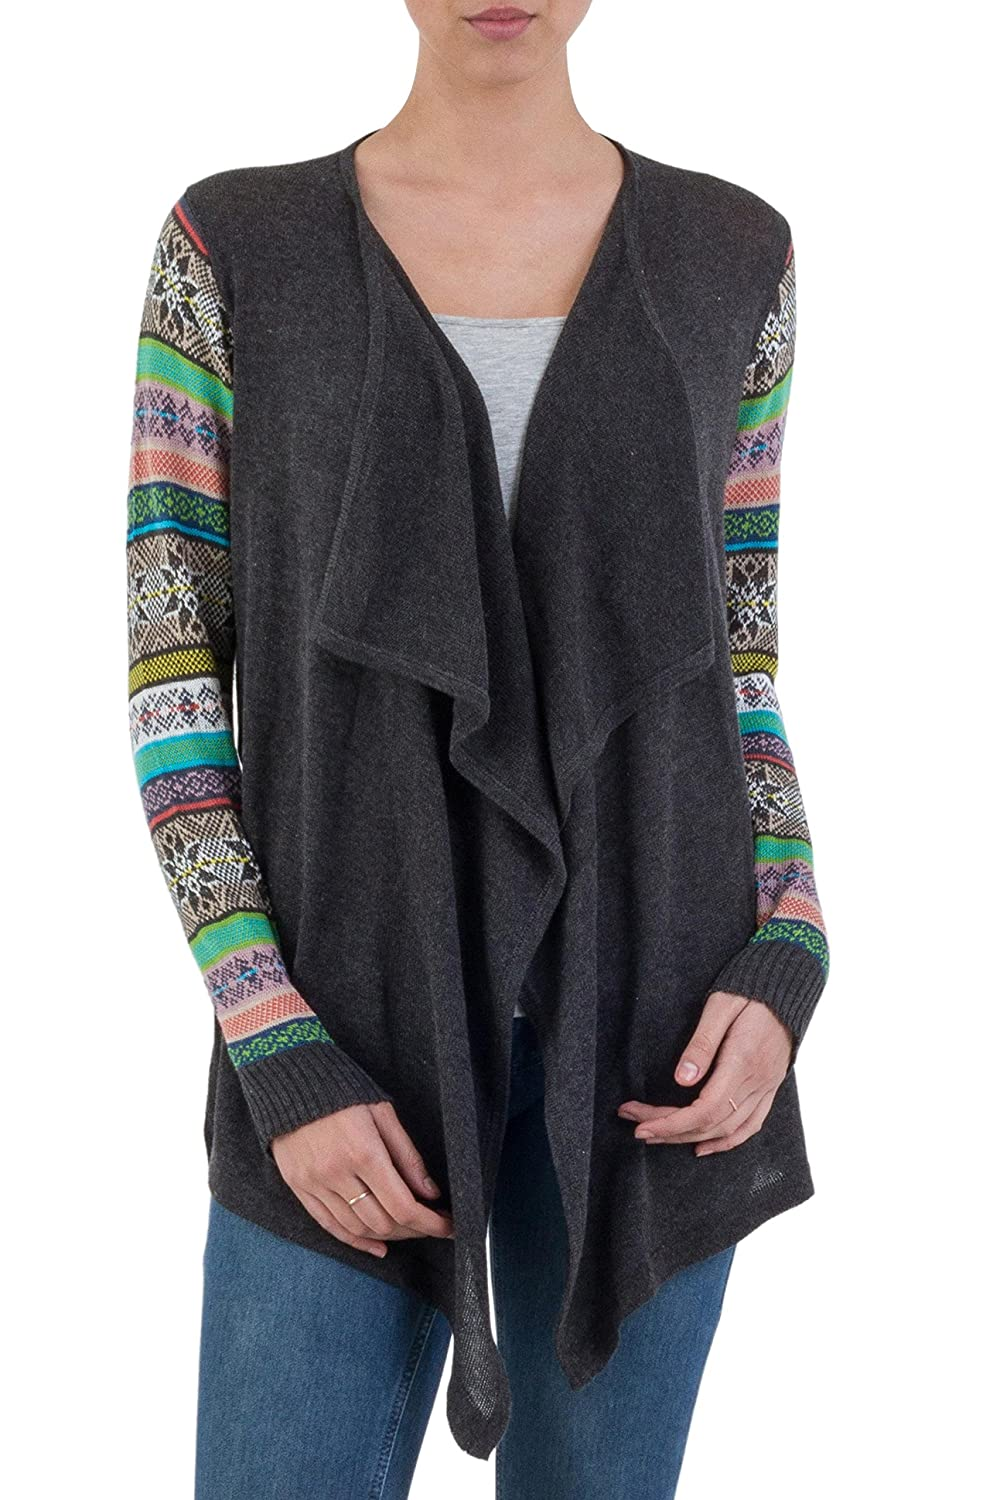 NOVICA Blue Cotton Blend Open Front Cardigan, 'Grey Southern Star'